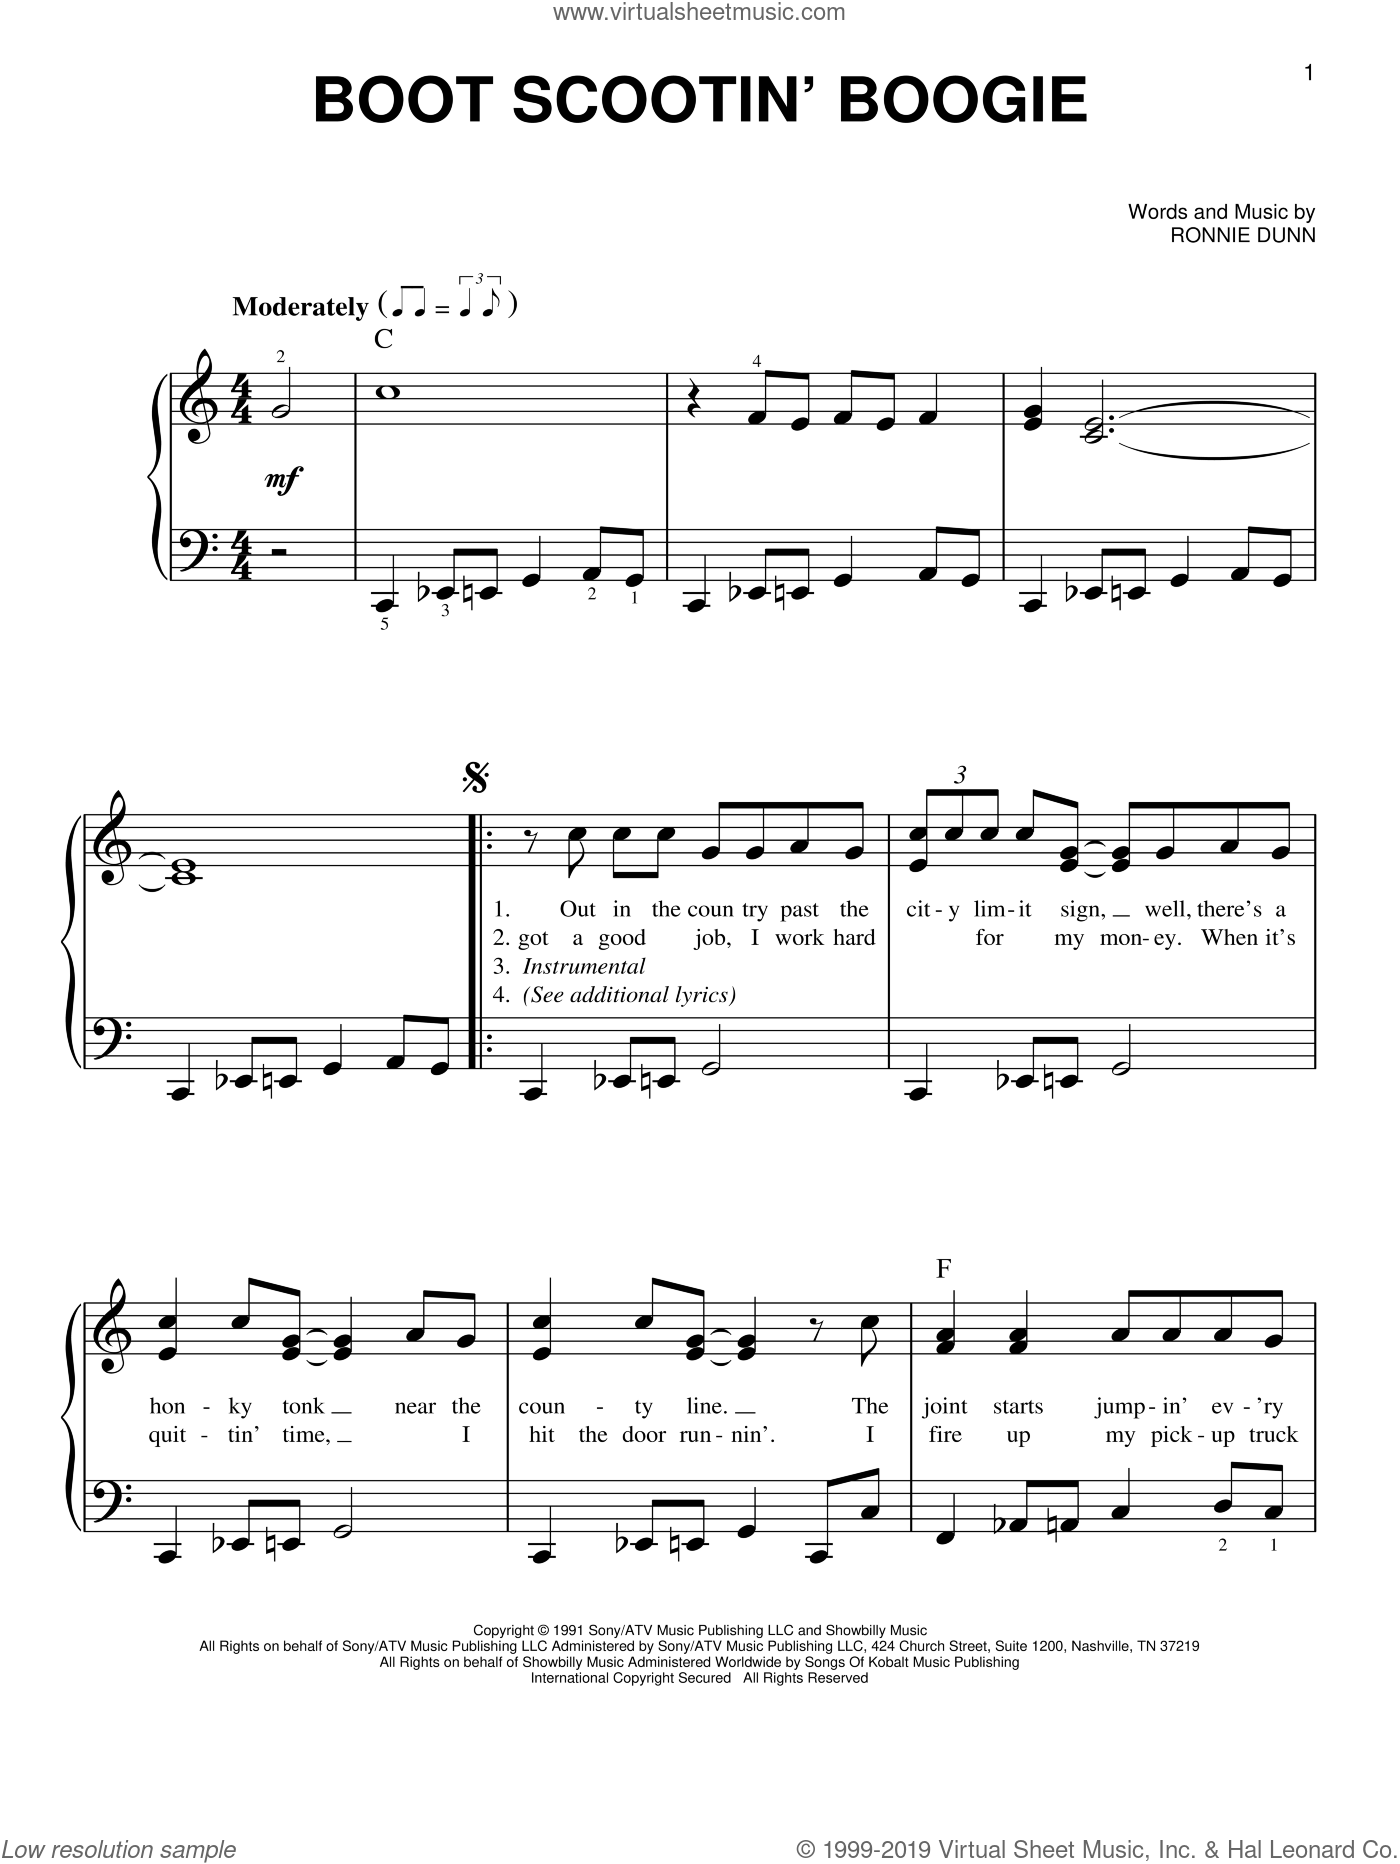 Boot Scootin' Boogie sheet music for piano solo by Brooks & Dunn and Ronnie Dunn, easy piano. Score Image Preview.